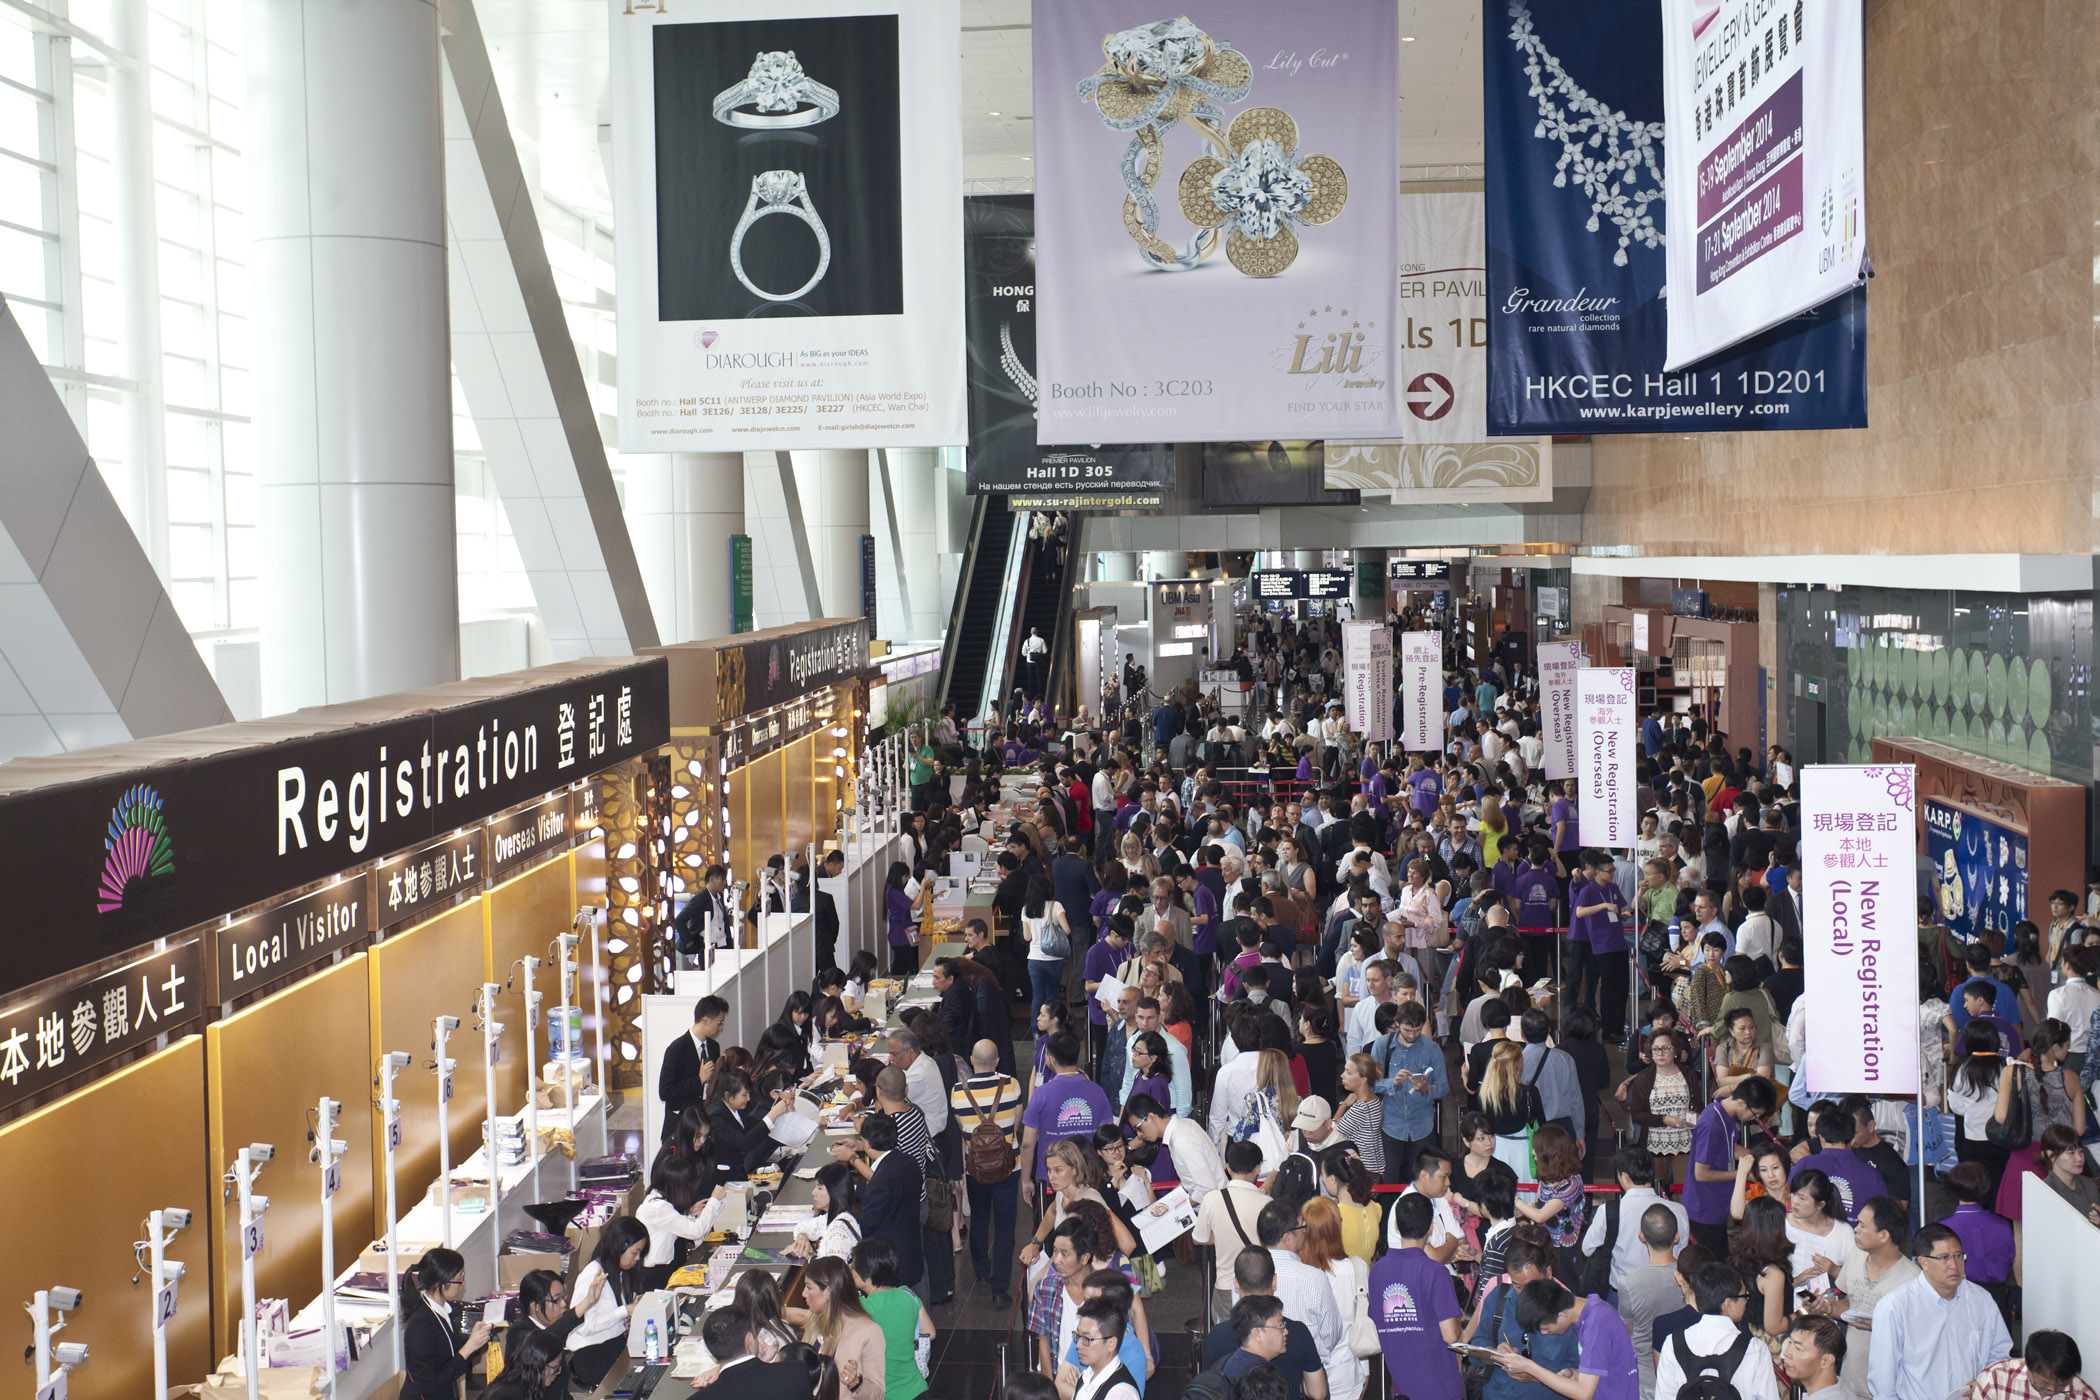 Trading on line expo